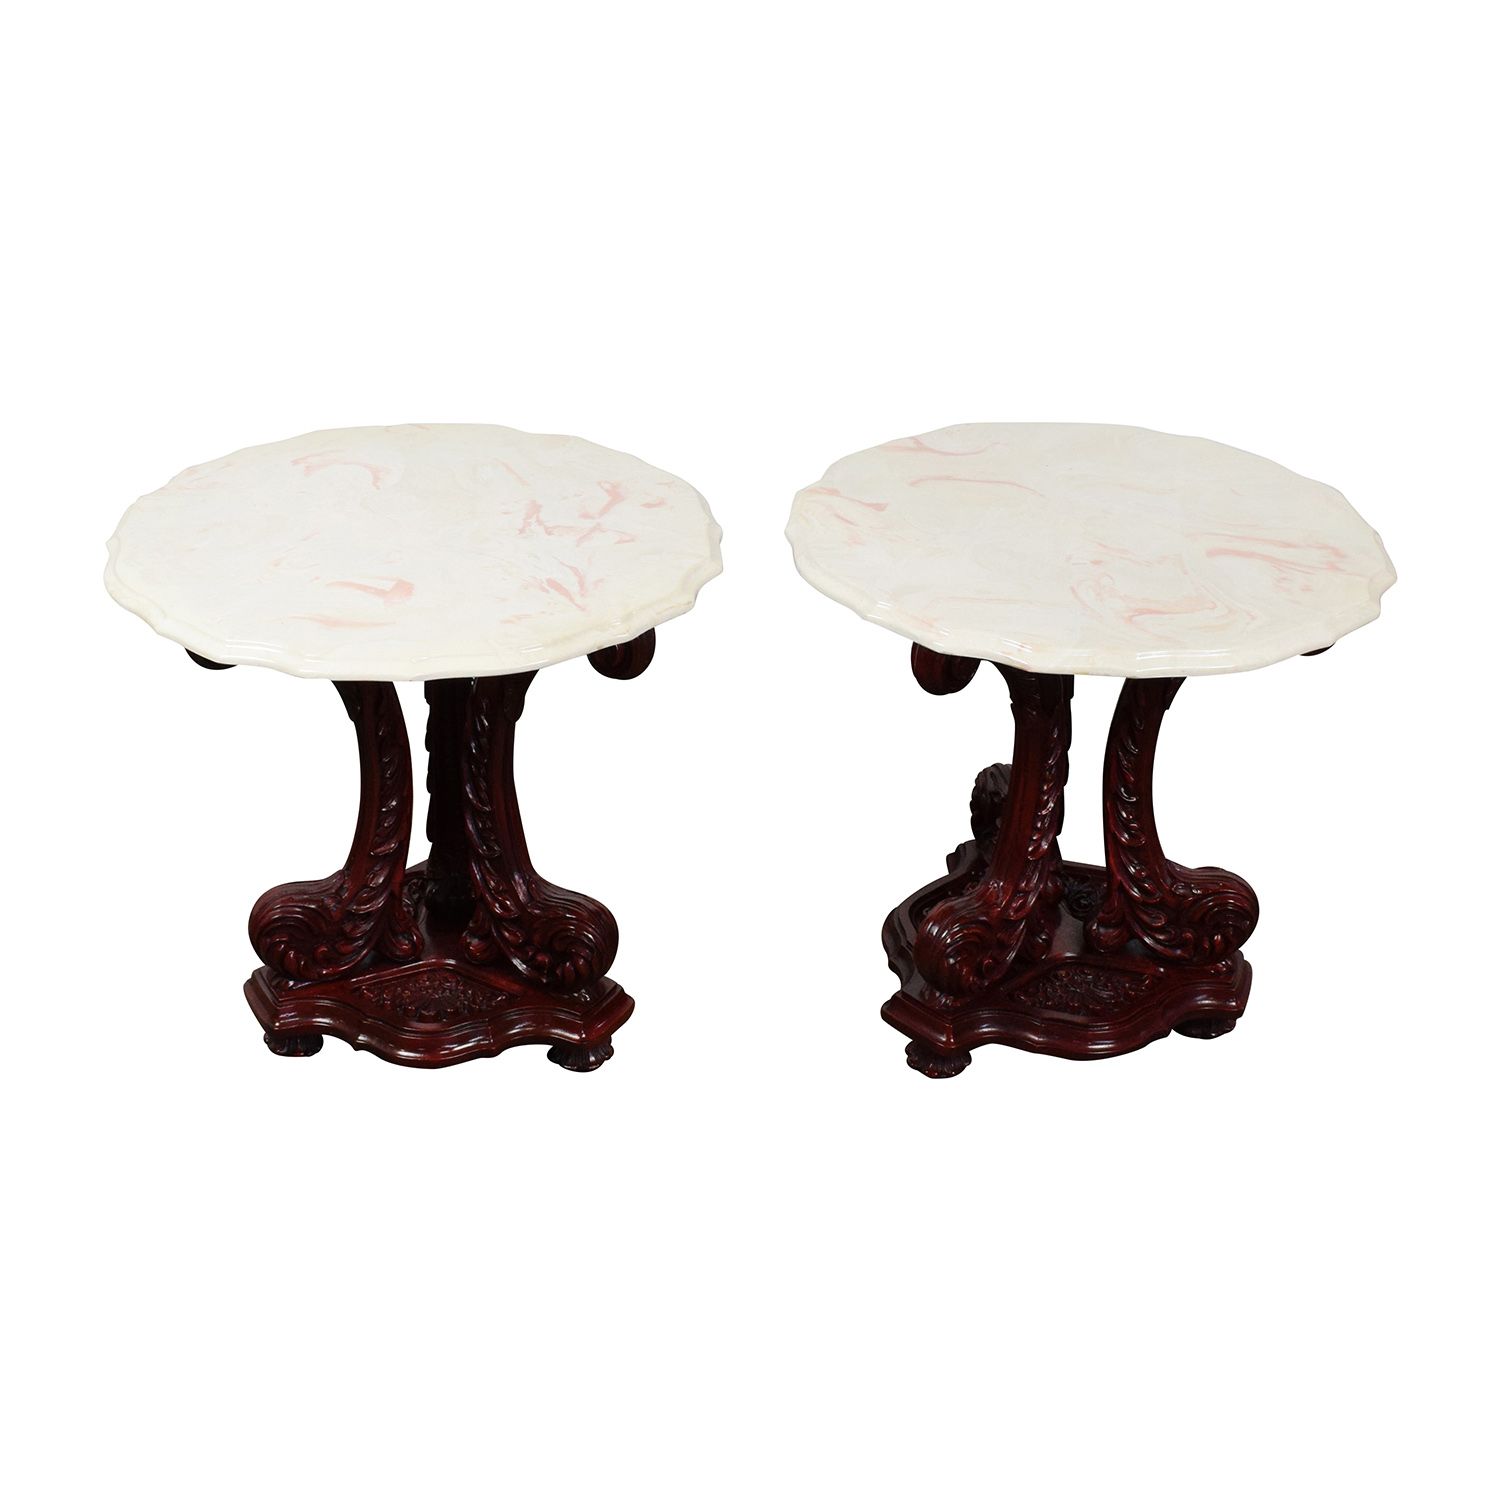 buy  Marble Top End Tables with Burgundy Wood Base online